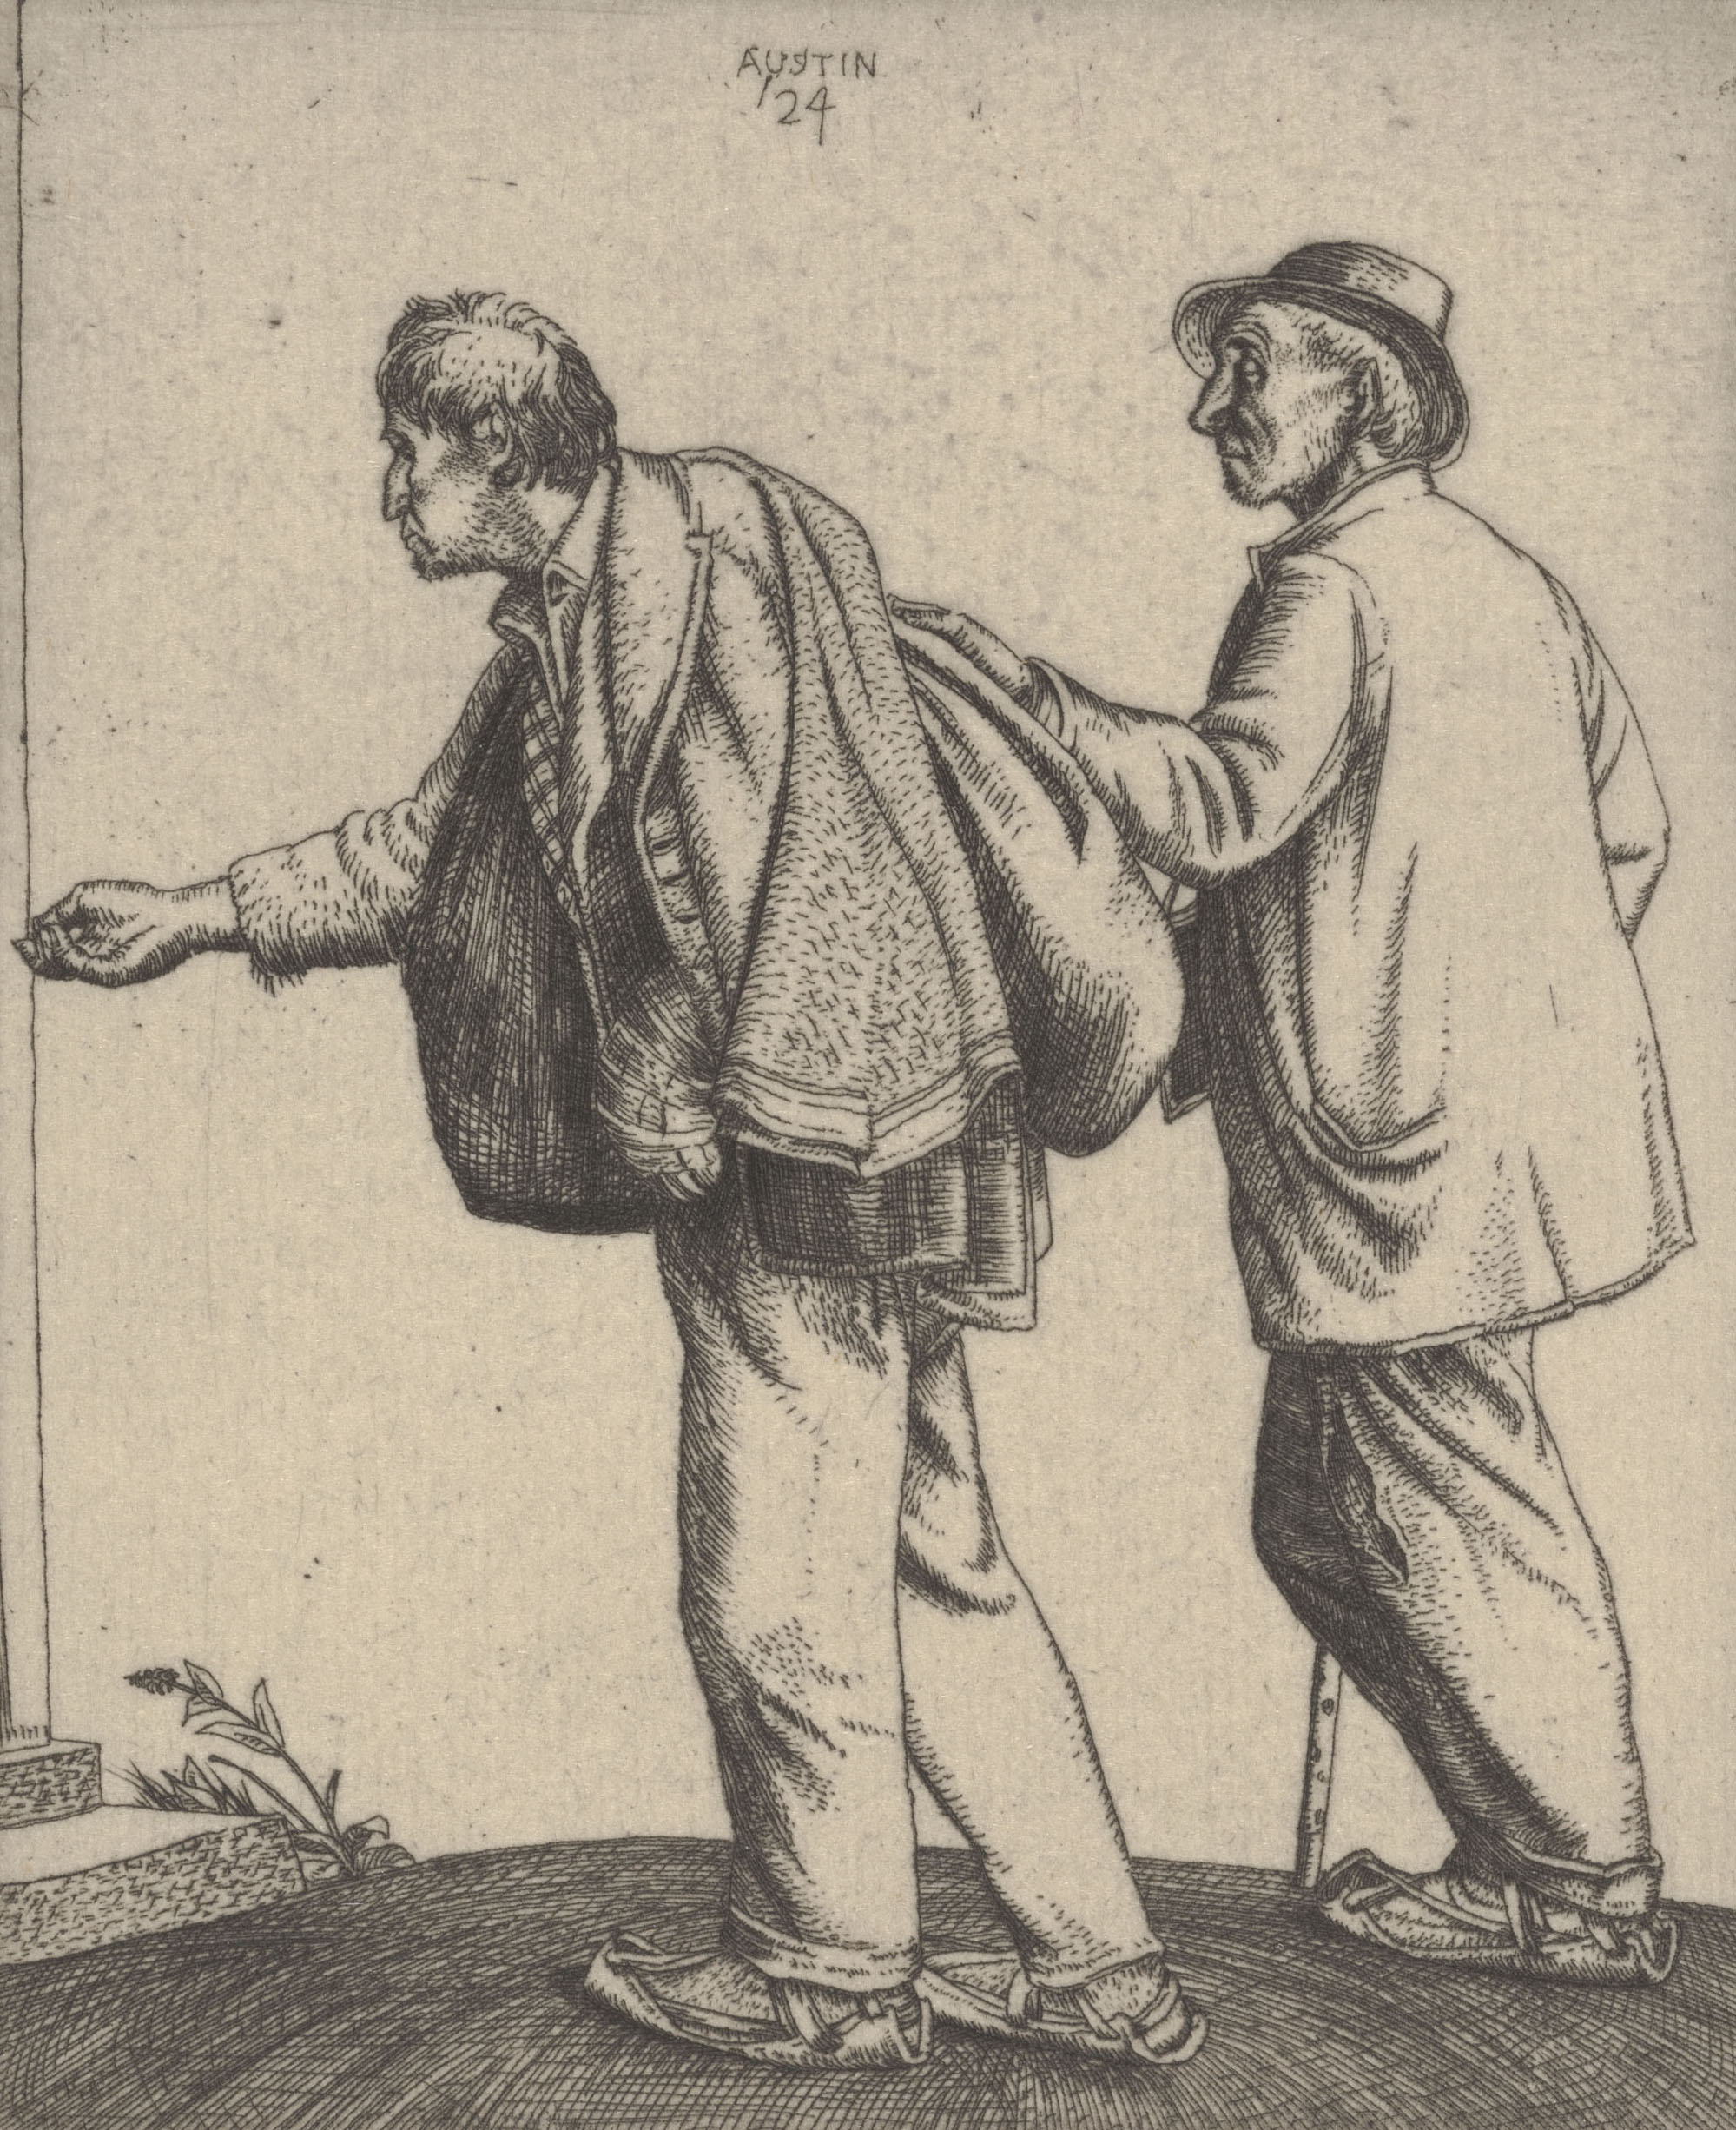 Robert Sargent Austin (British, 1895–1973), <em>Beggars</em>, 1924, etching. Gift of Mr. and Mrs. Frederick C. Elbel, 1987.049.008